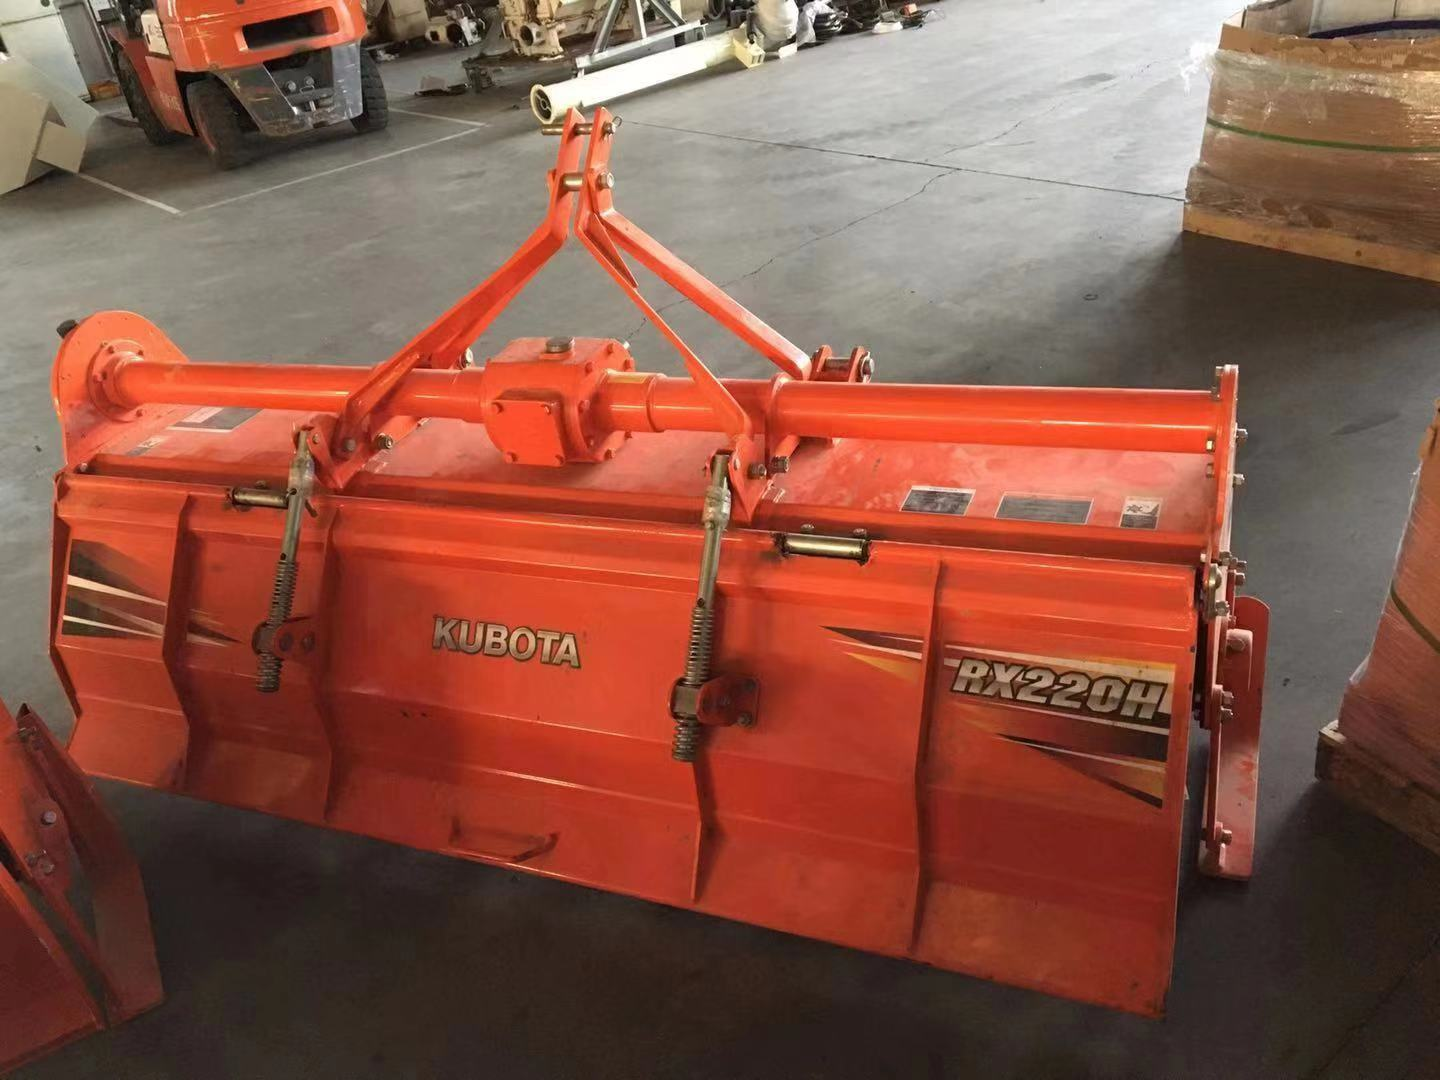 Kubota rotary machine Farm tiller rotary cultivator for sale